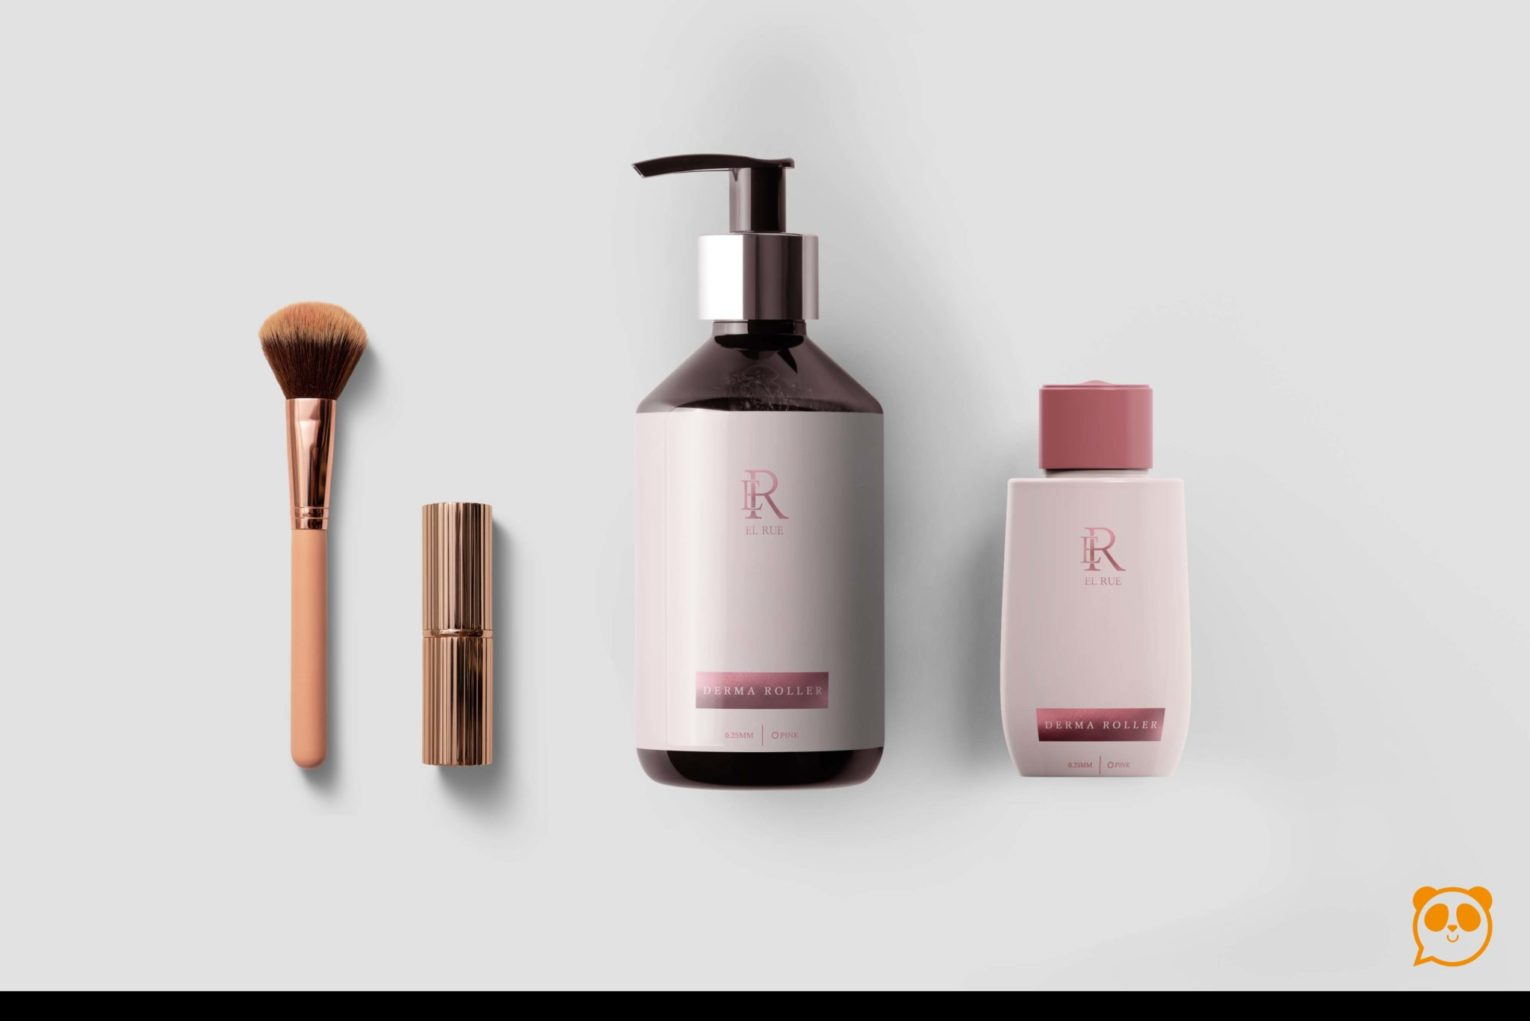 Elegant Women Cosmetics Pump Bottle Mockup